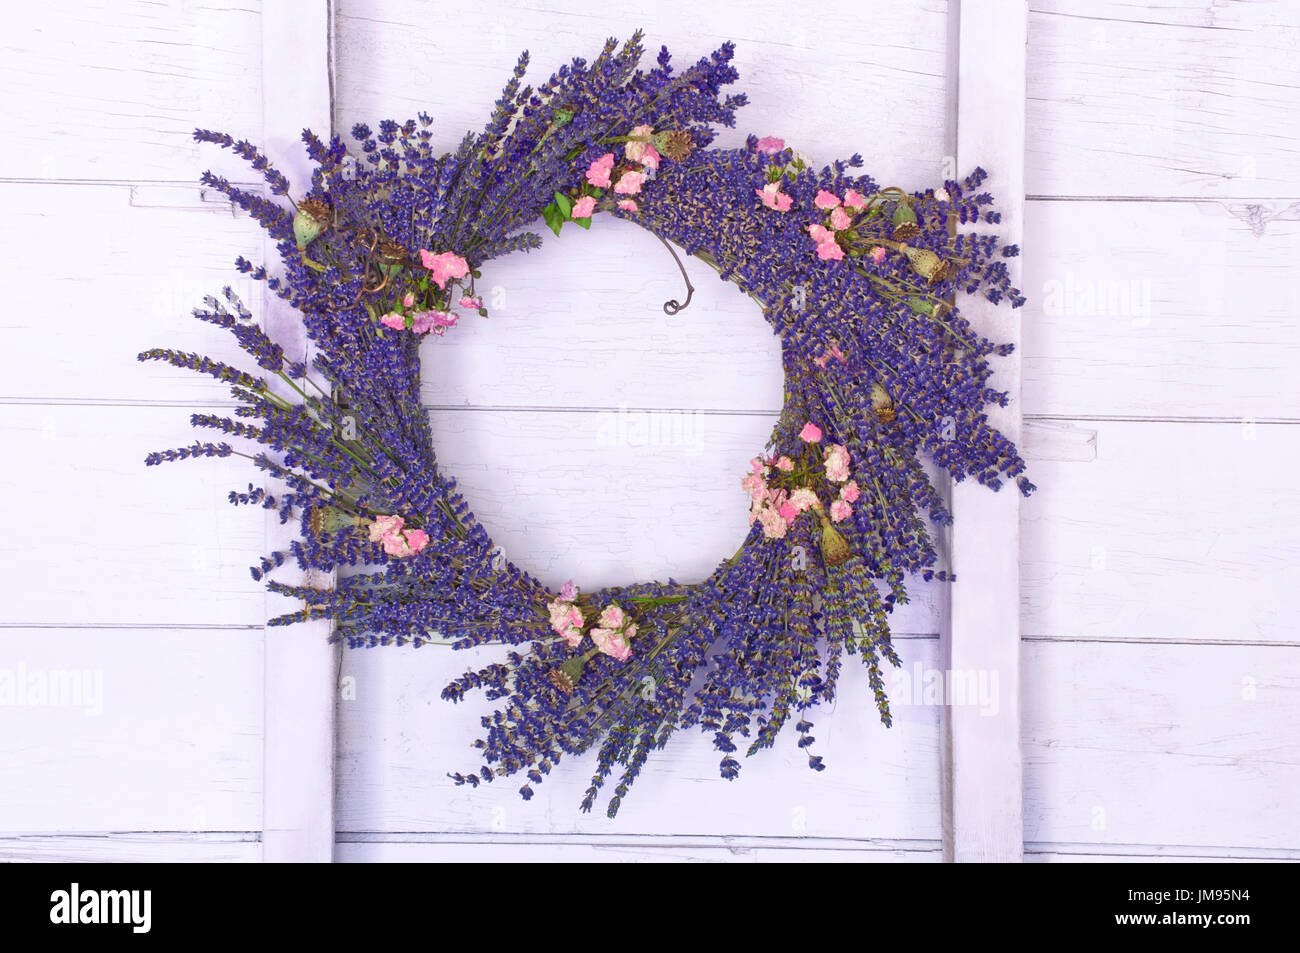 Lavender wreath hanging on wood wall in barn - Stock Image